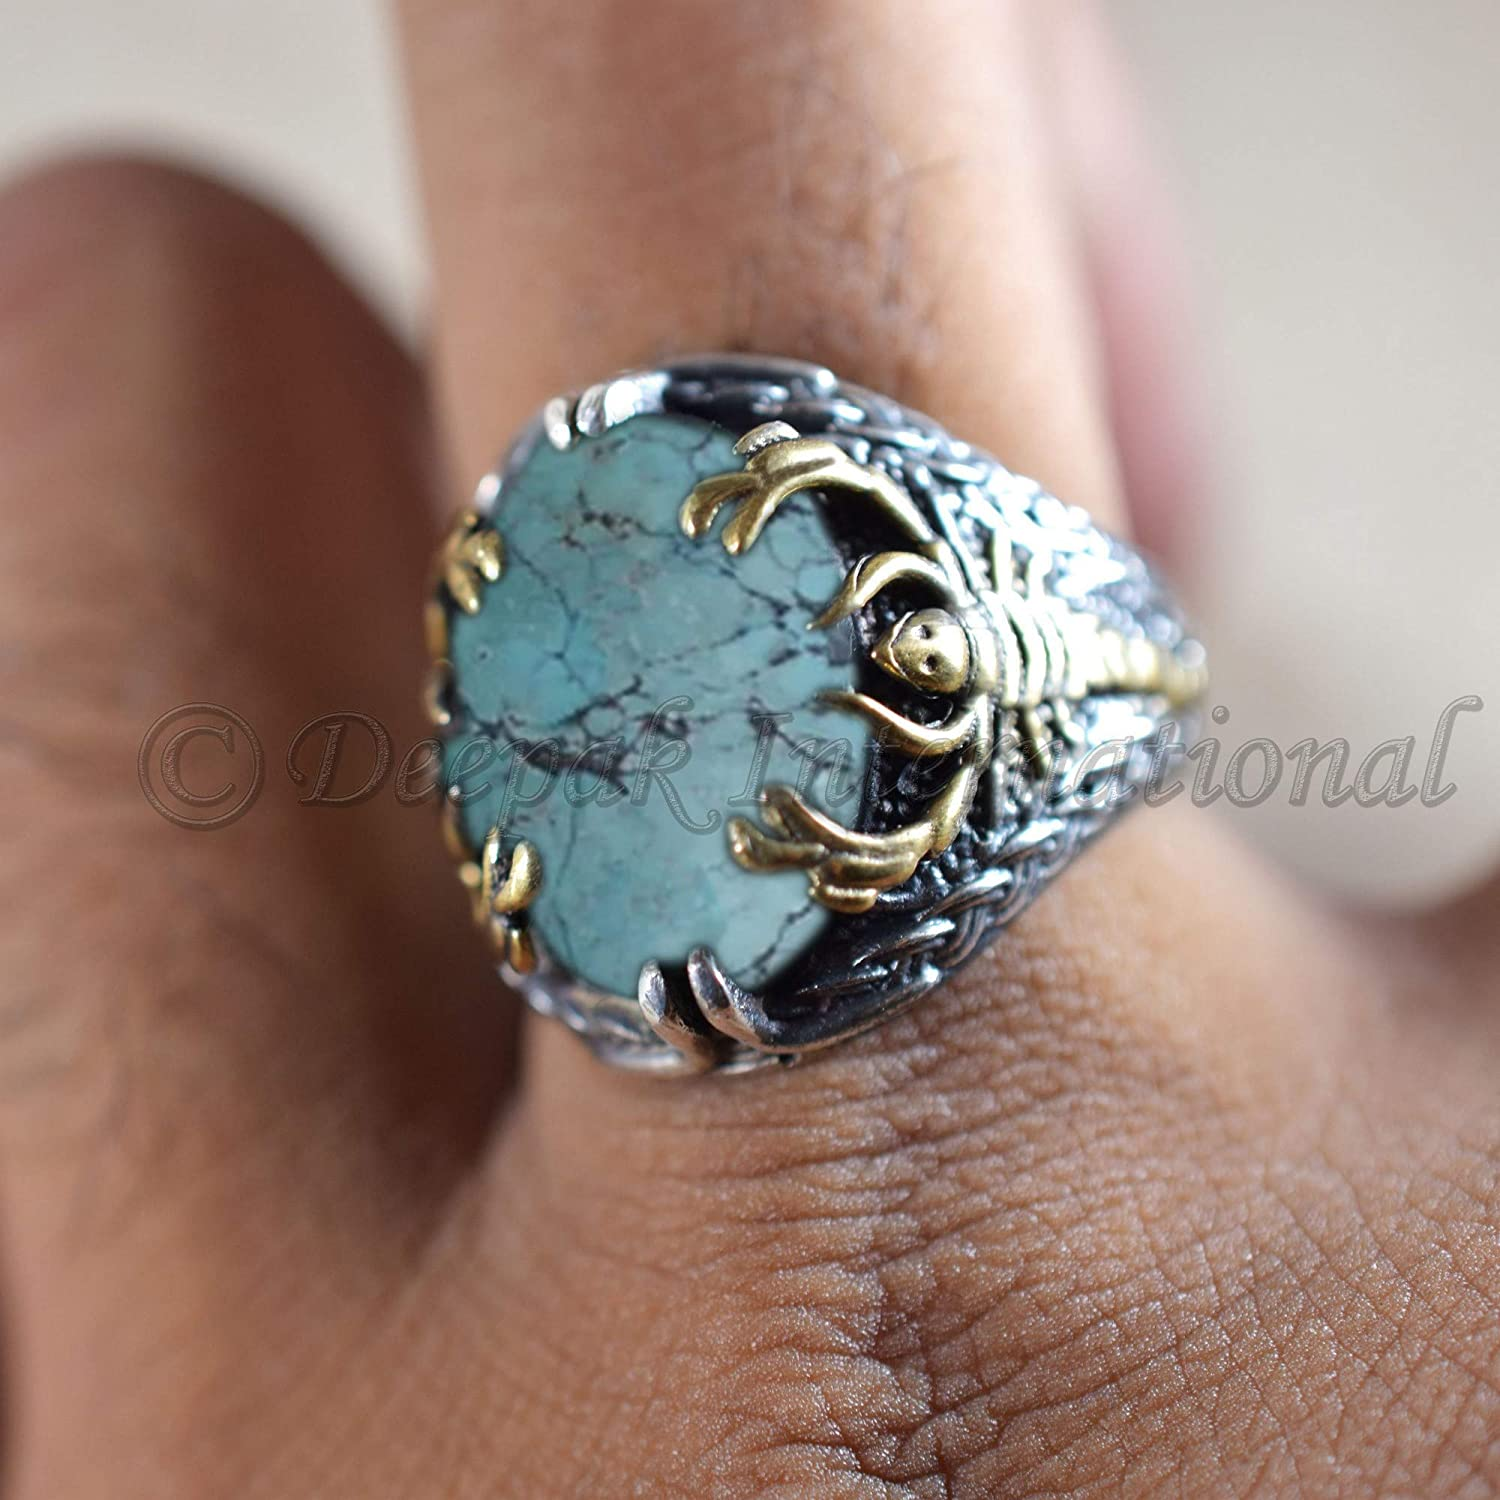 mans heavy silver ring attractive jewelry scorpion design mans ring new year ring mans party wear ring 925 sterling silver ring aaa tibetan turquoise gemstone ring handicrafted silver ring